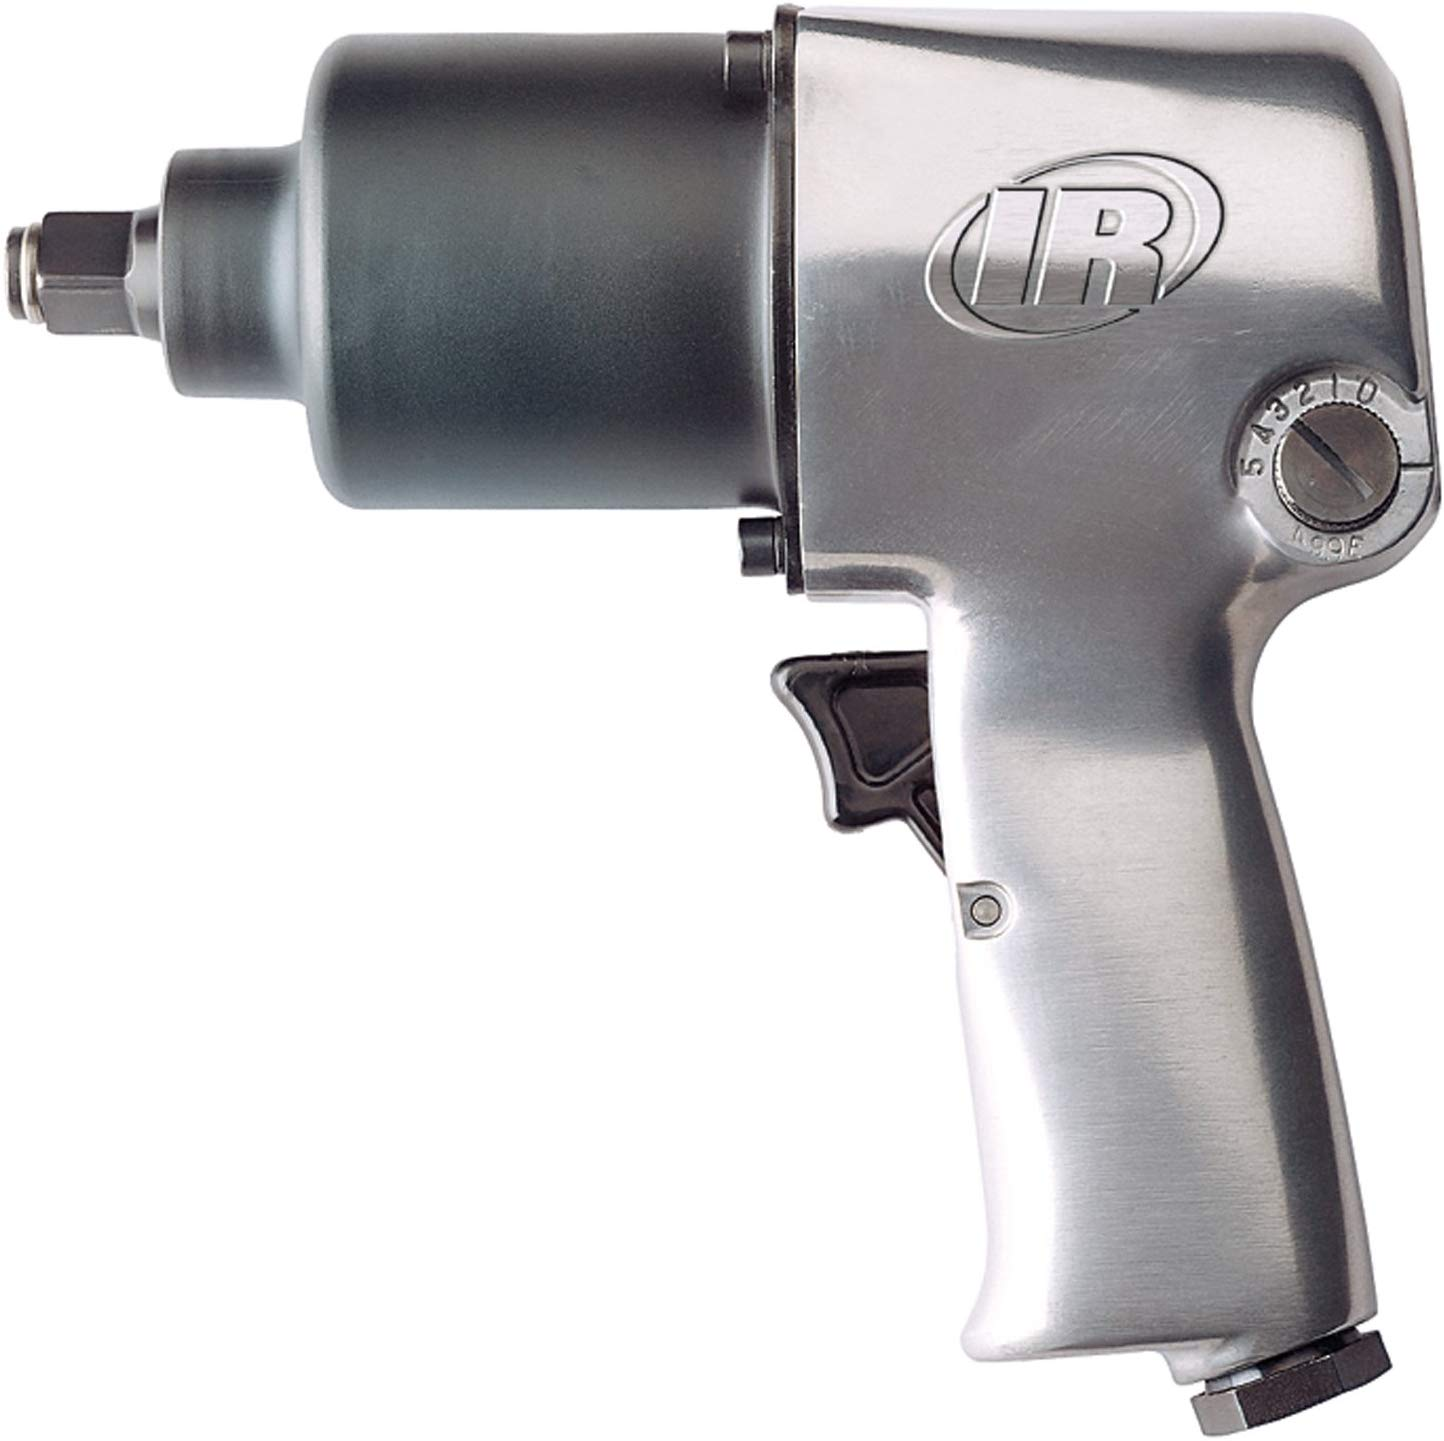 Ingersoll Rand 231C Air Impact Wrench